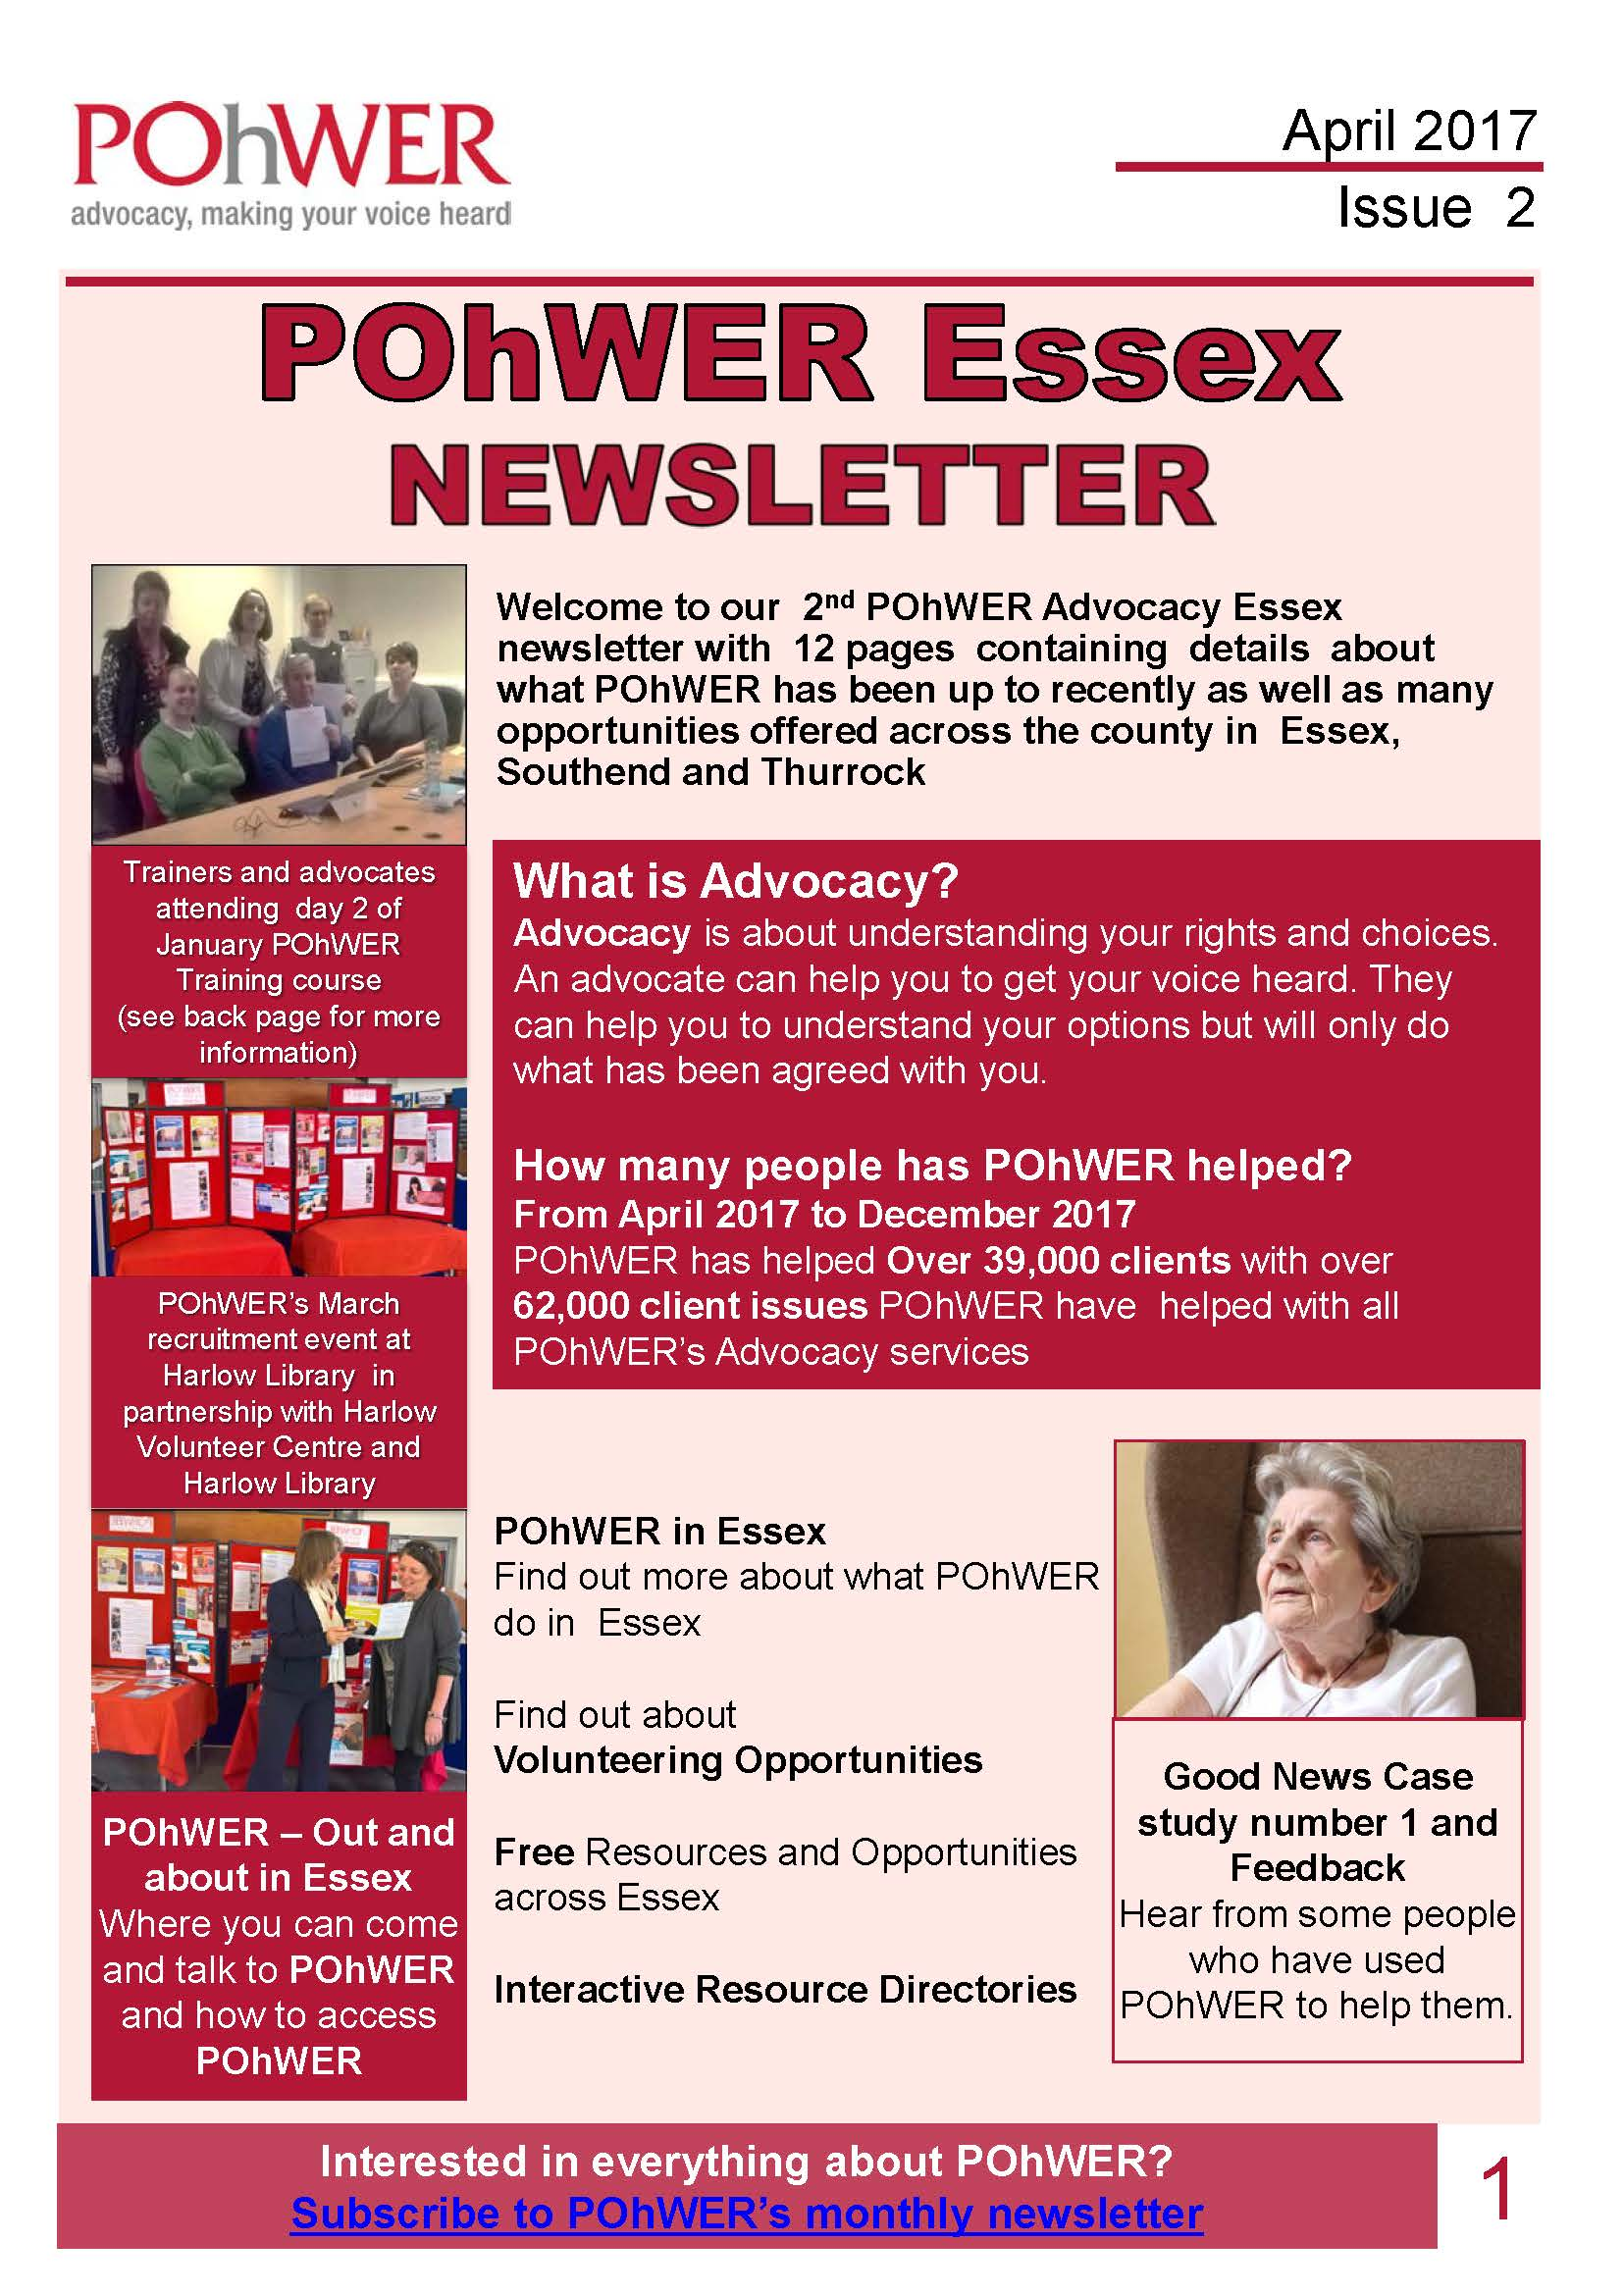 The front cover of the POhWER Newsletter 2.